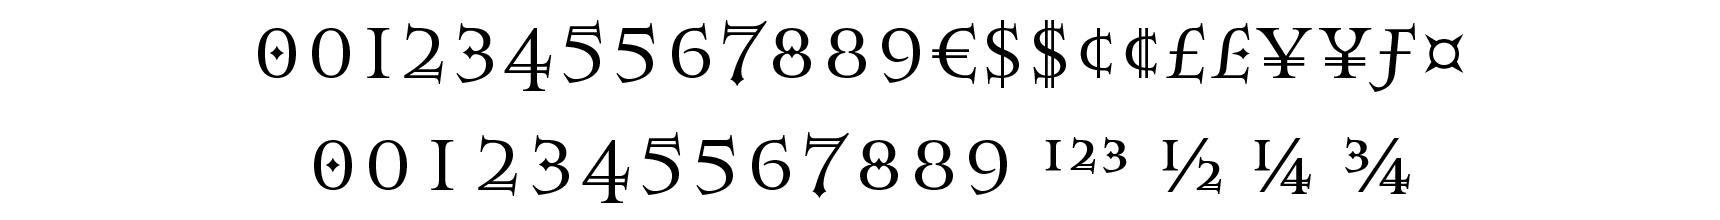 <p>Figures & currency</p> glyphs